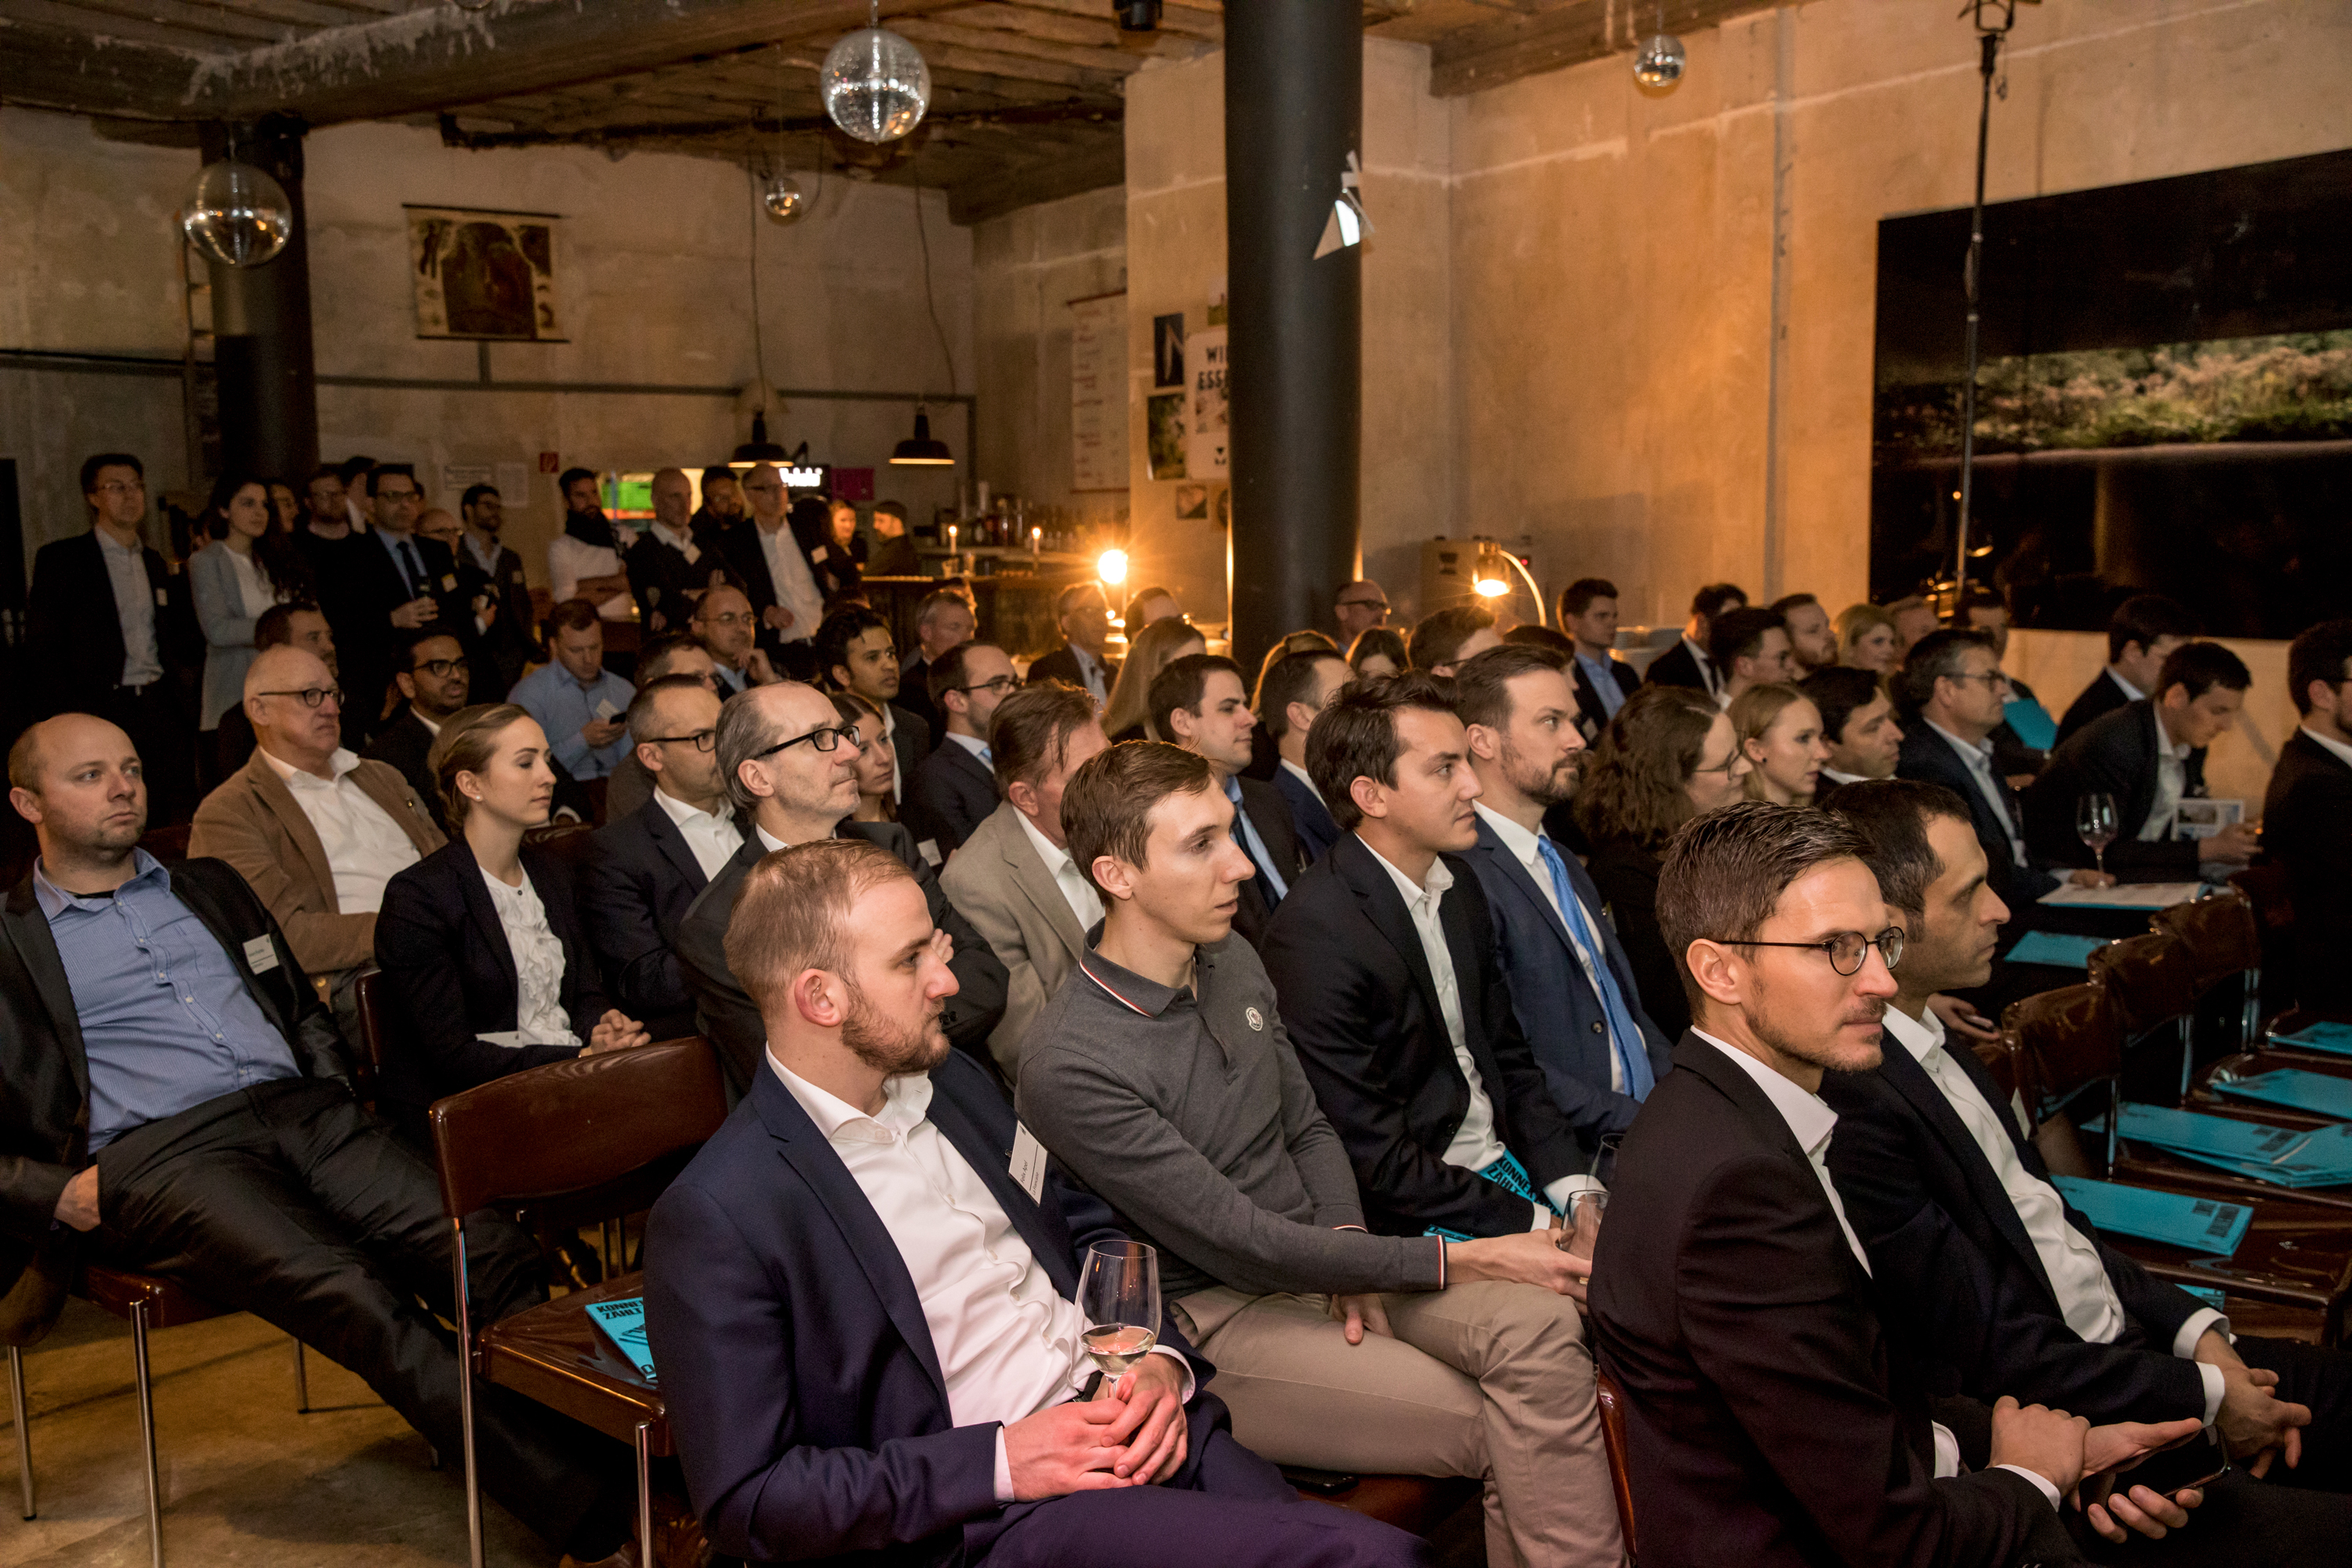 20180308-LAUNCH-EVENT-WIREDSCORE-OFFENBLENDE-LYS-21.jpg